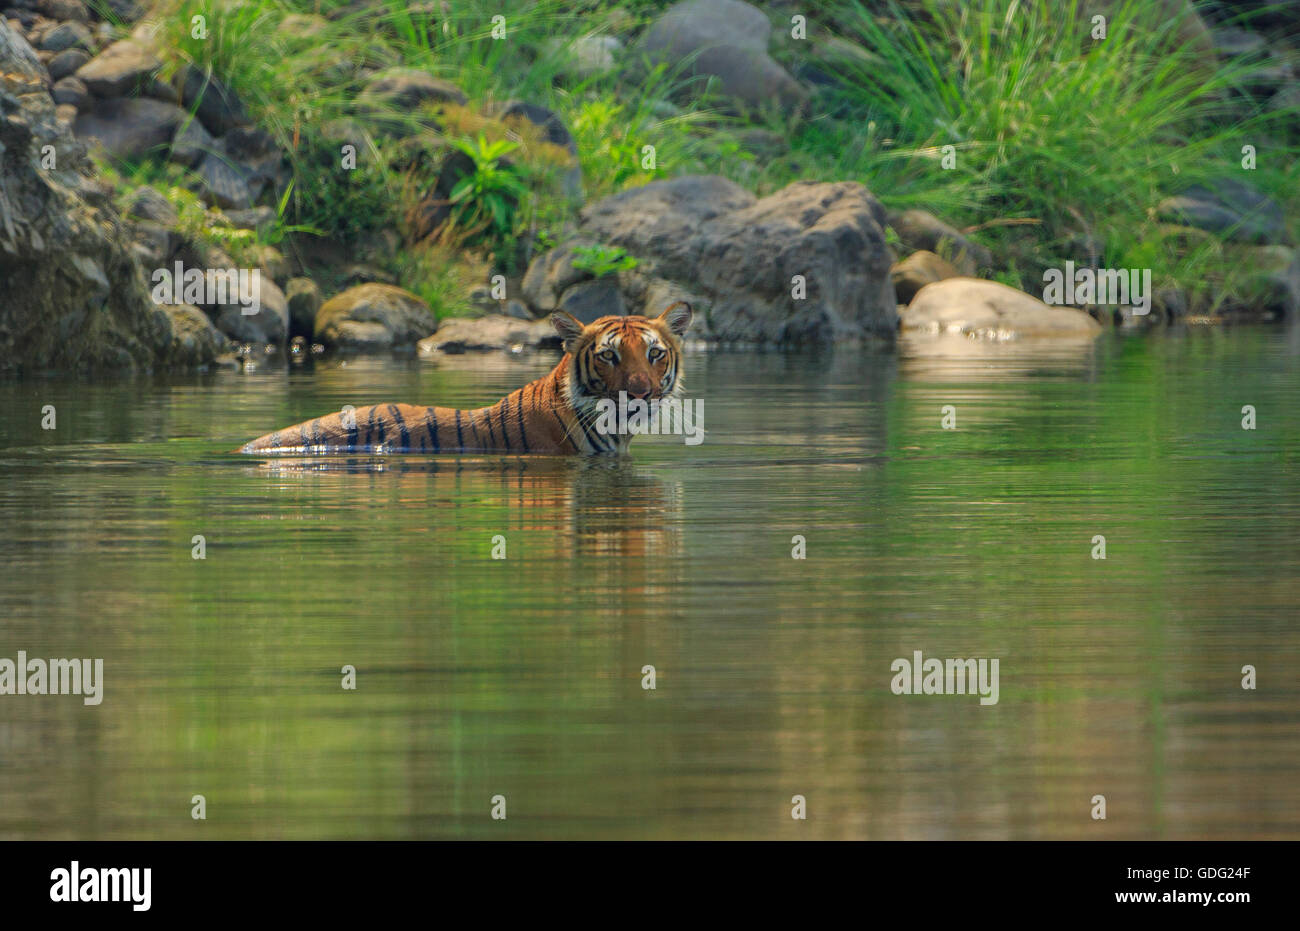 Bengal Tiger cooling off in a natural pool (photographed at Corbett National Park, India) - Stock Image